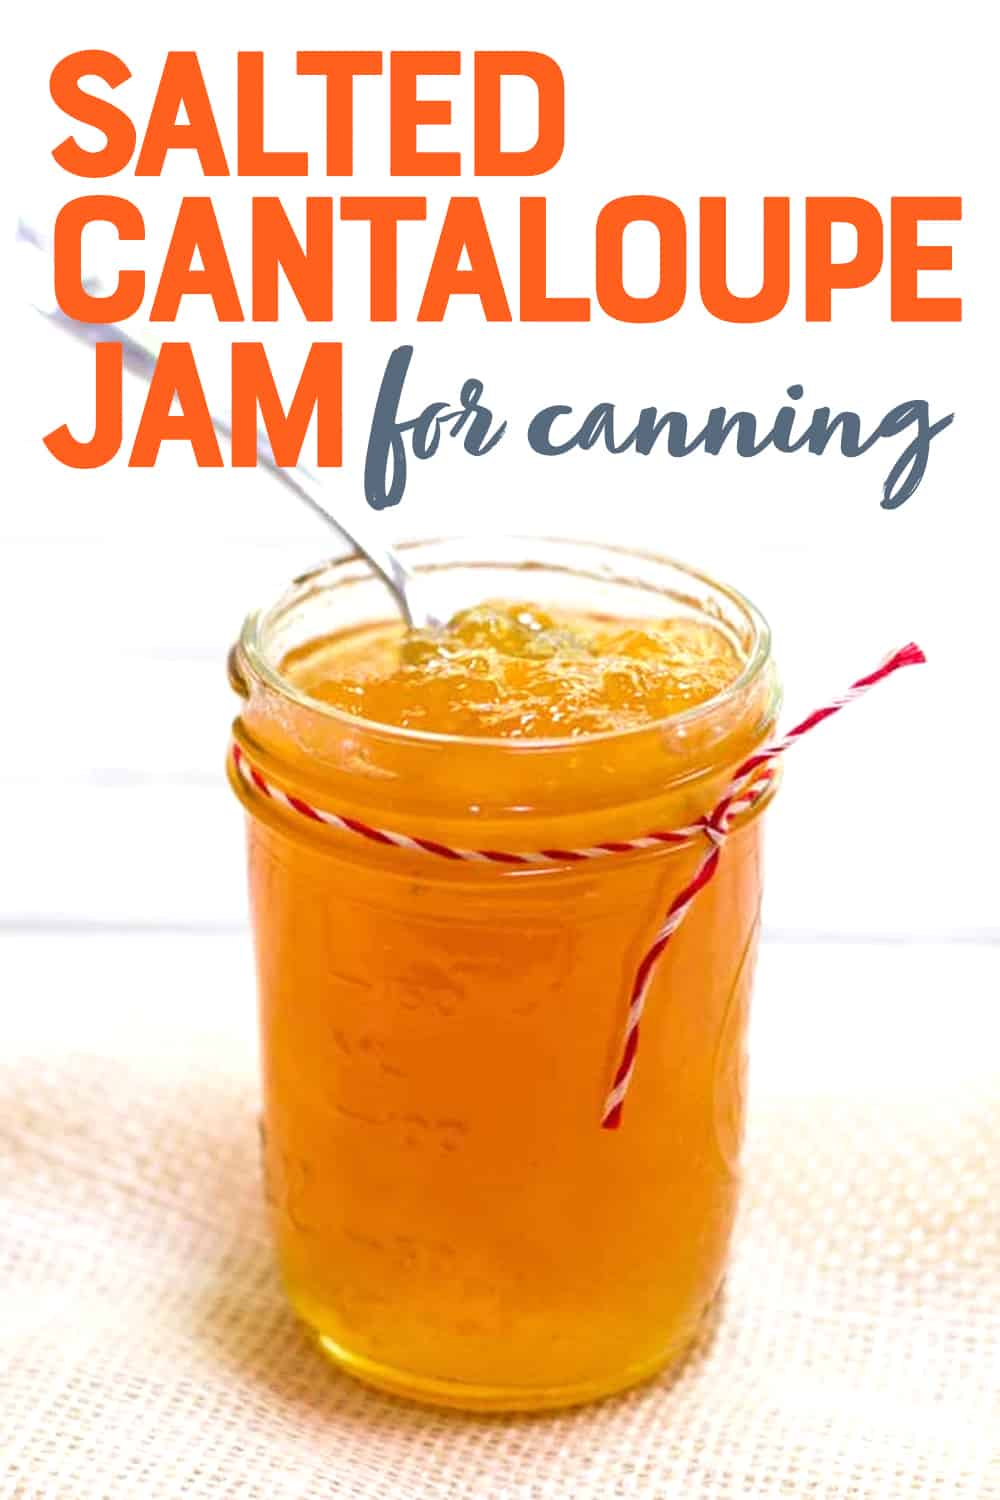 """Close-up of pint-sized canning jar full of salted cantaloupe jam. A text overlay reads, """"Salted Cantaloupe Jam for Canning."""""""